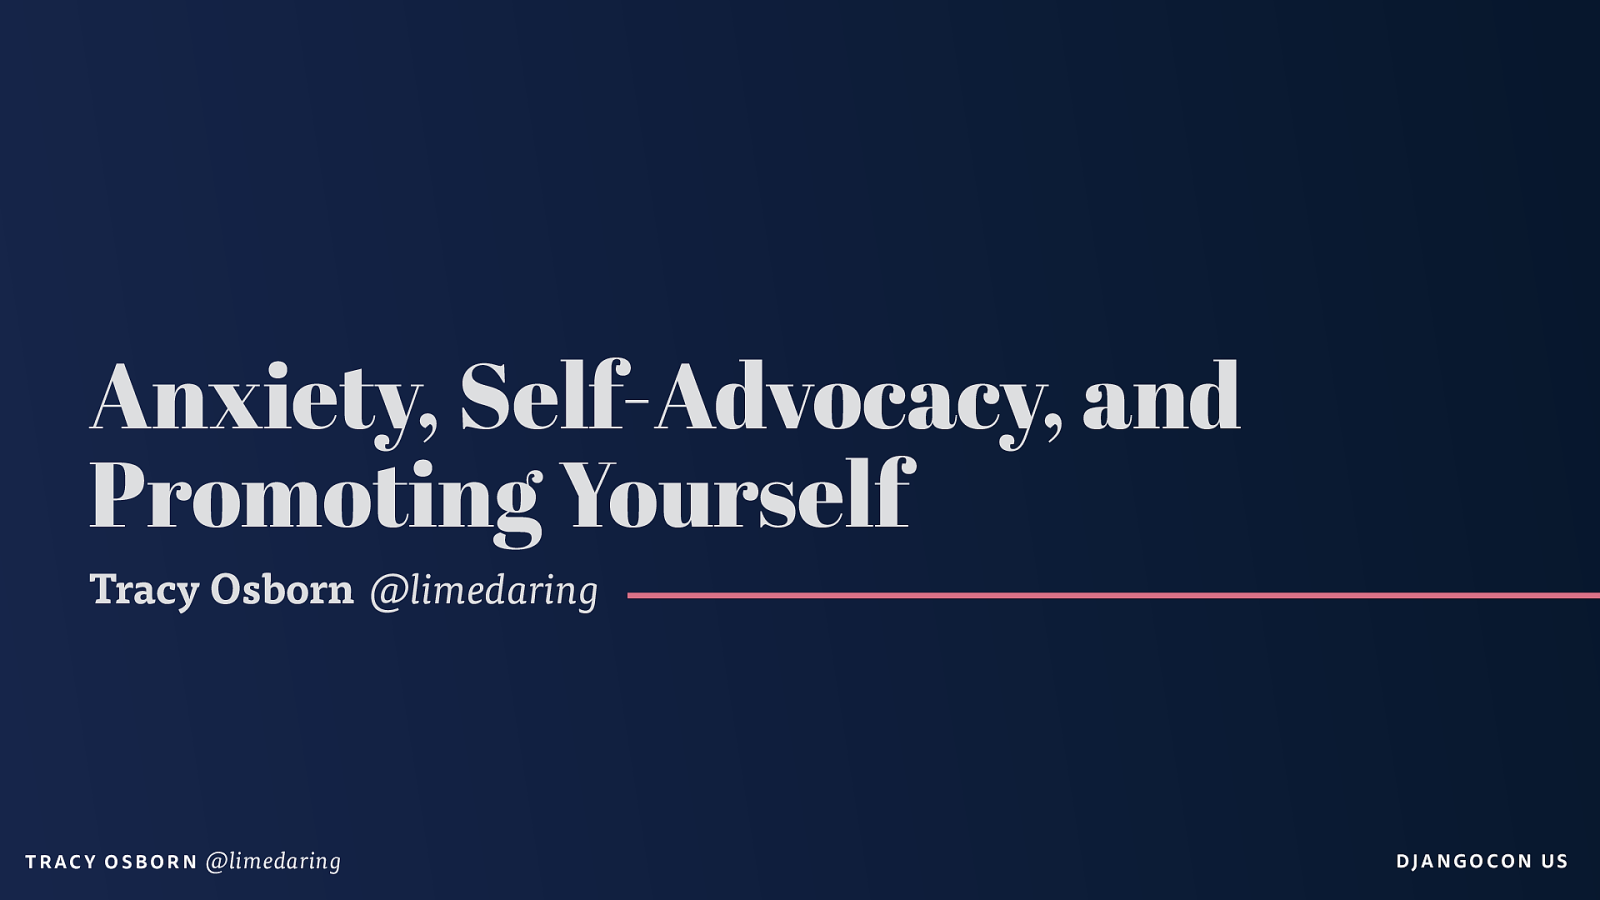 Keynote: Anxiety, Self-Advocacy, and Promoting Yourself